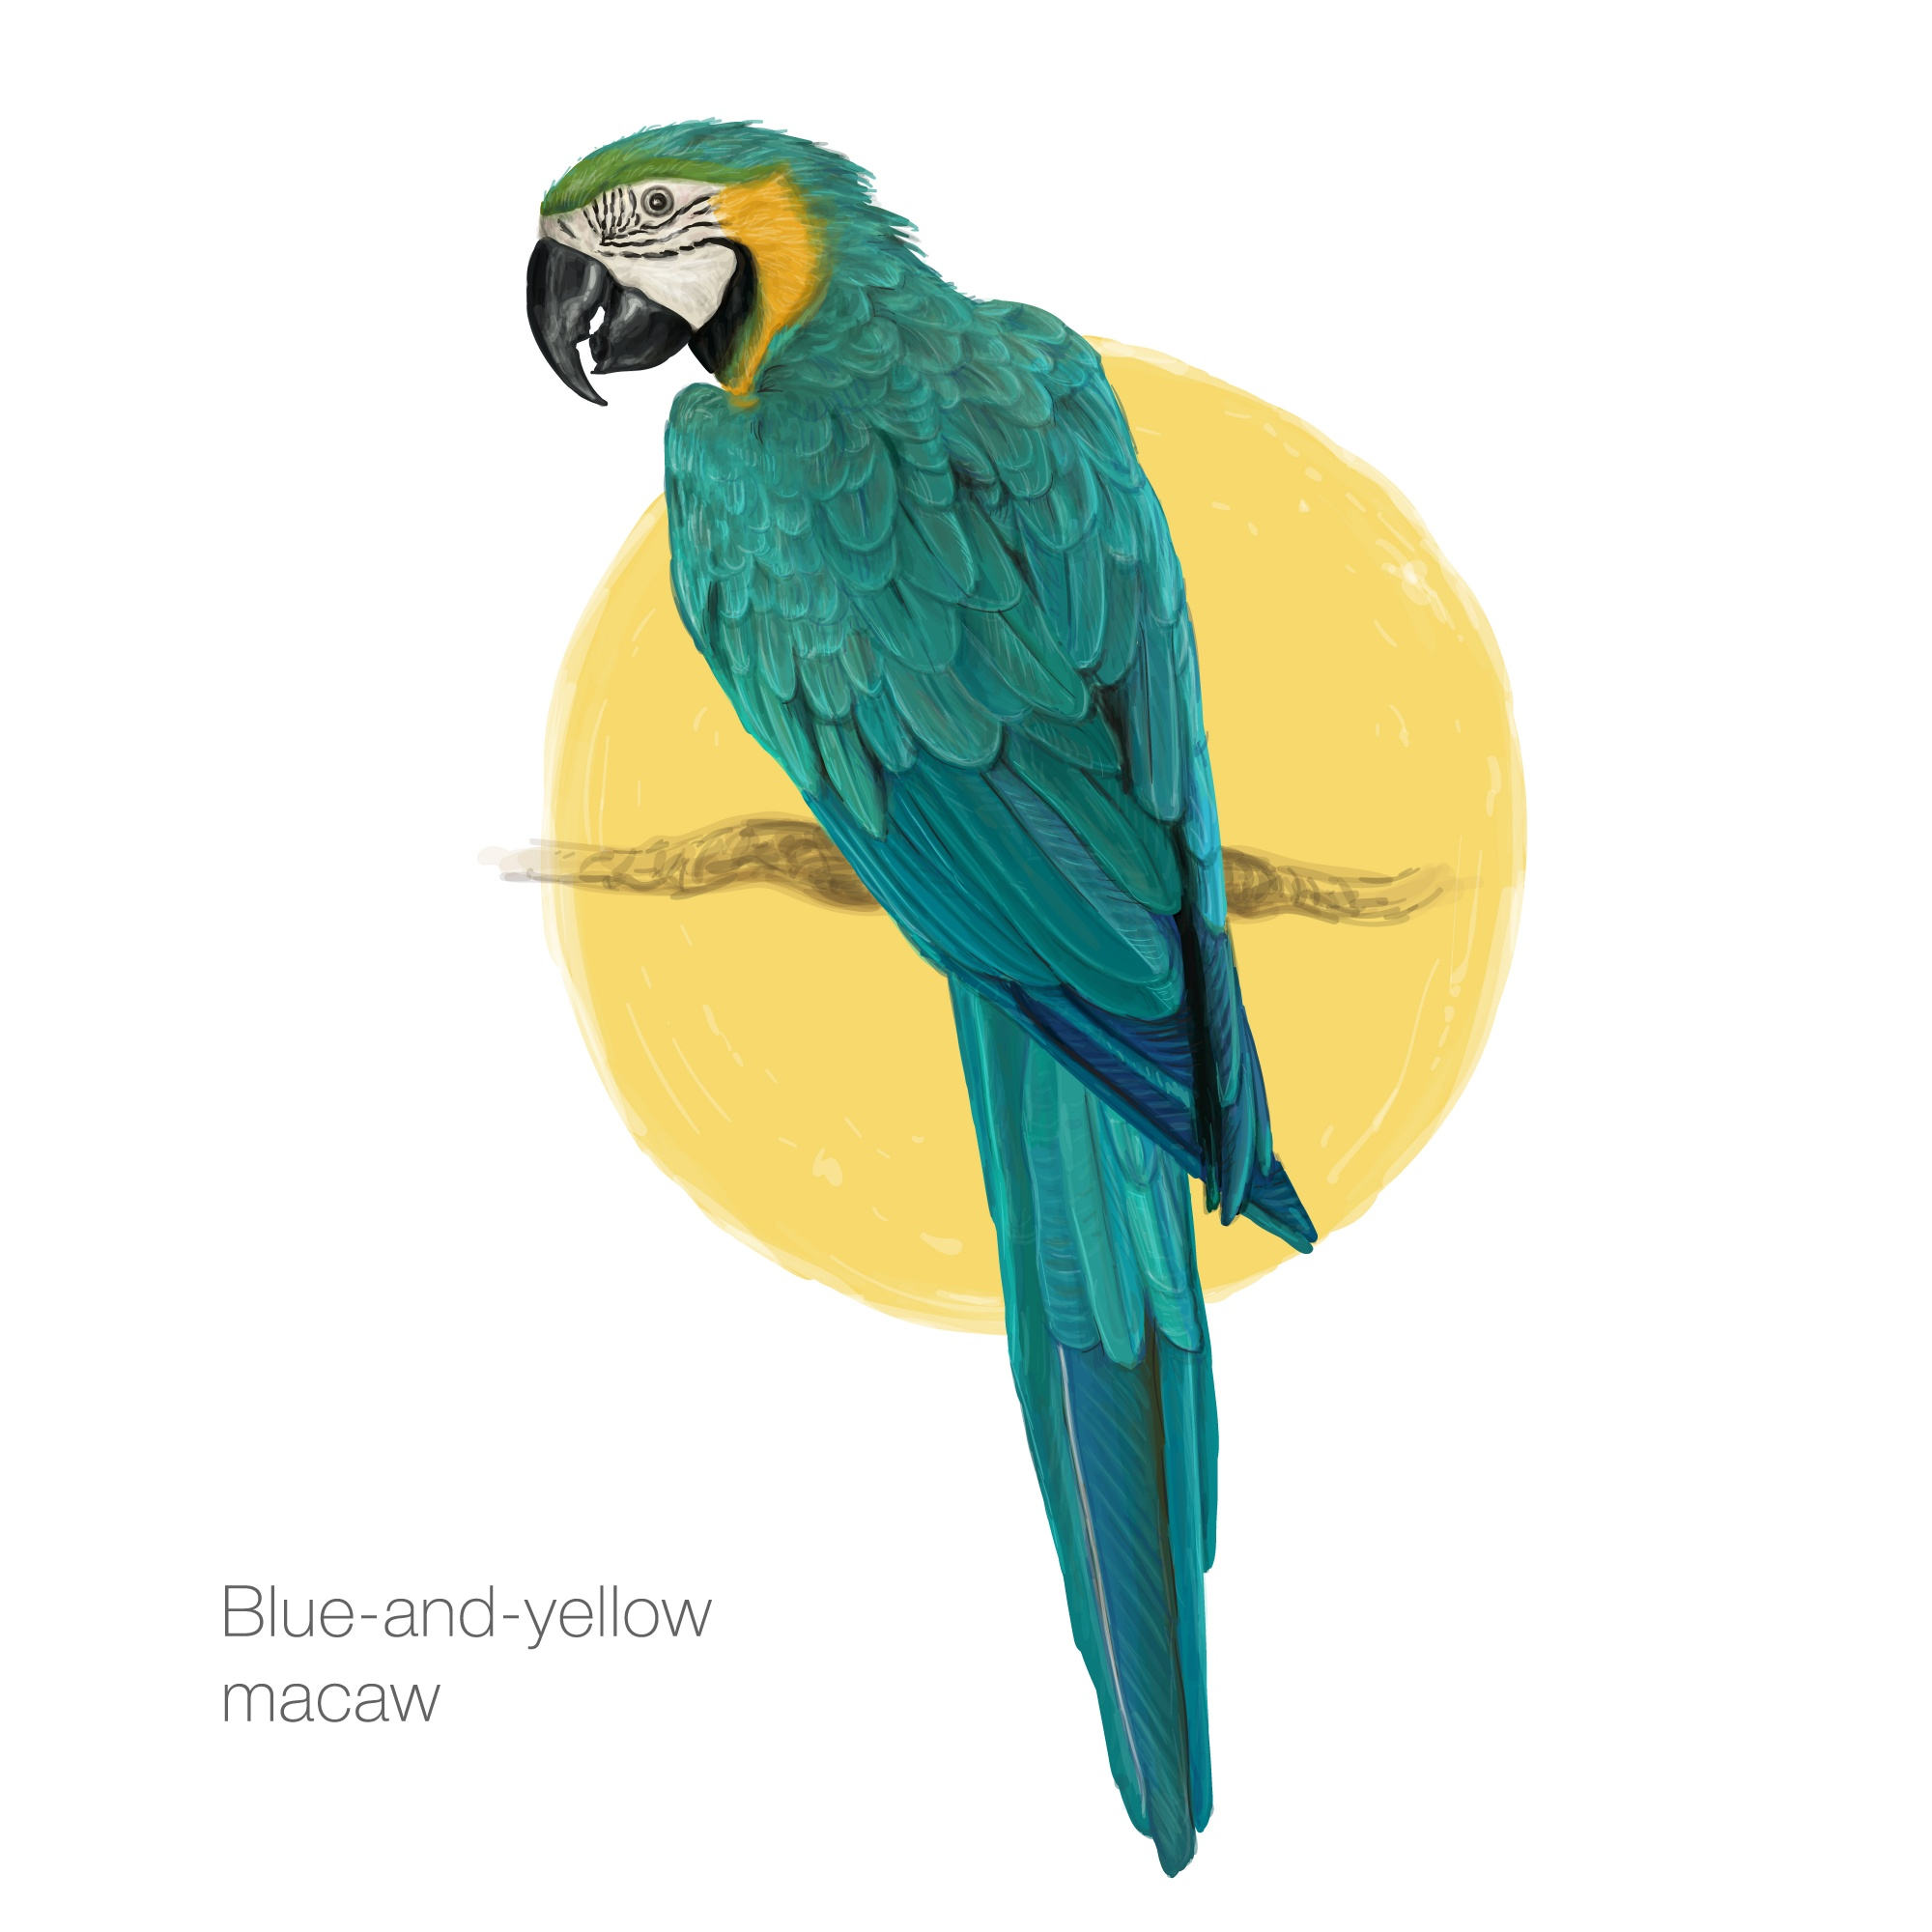 Blue and yellow macaw hand drawn painting